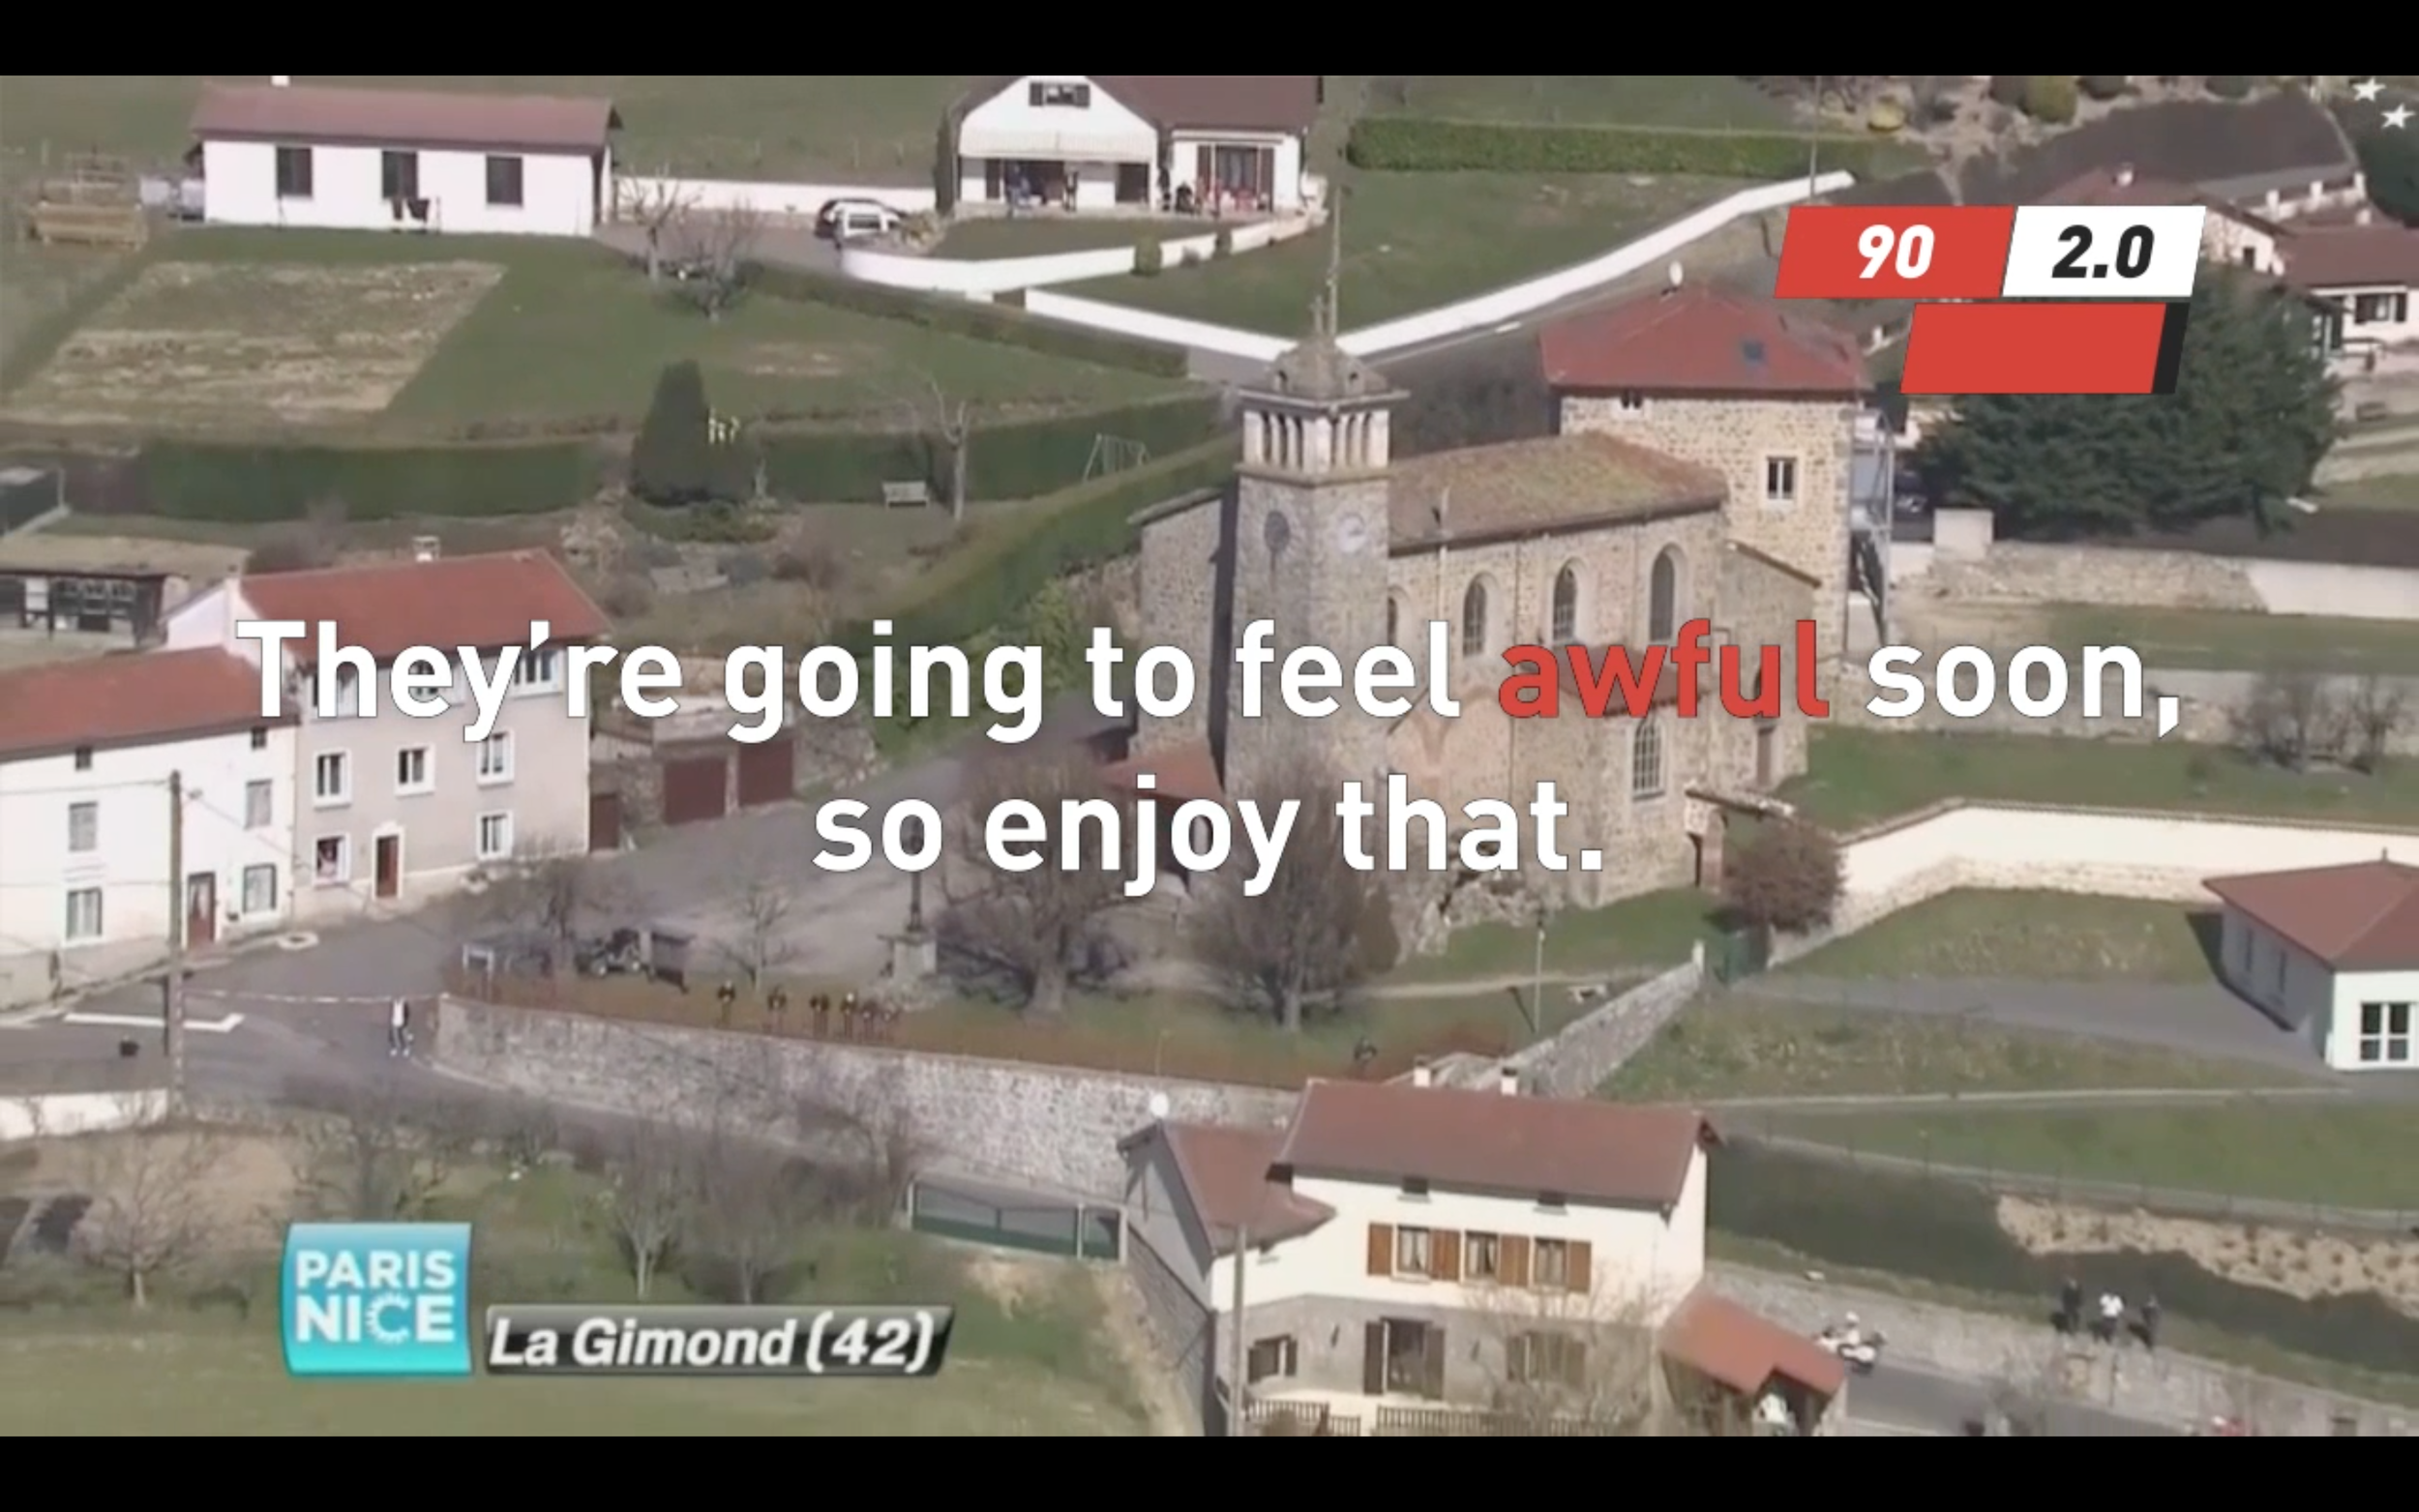 Screenshot of the new Downward Spiral. Here is a comment on how your legs will feel shortly.